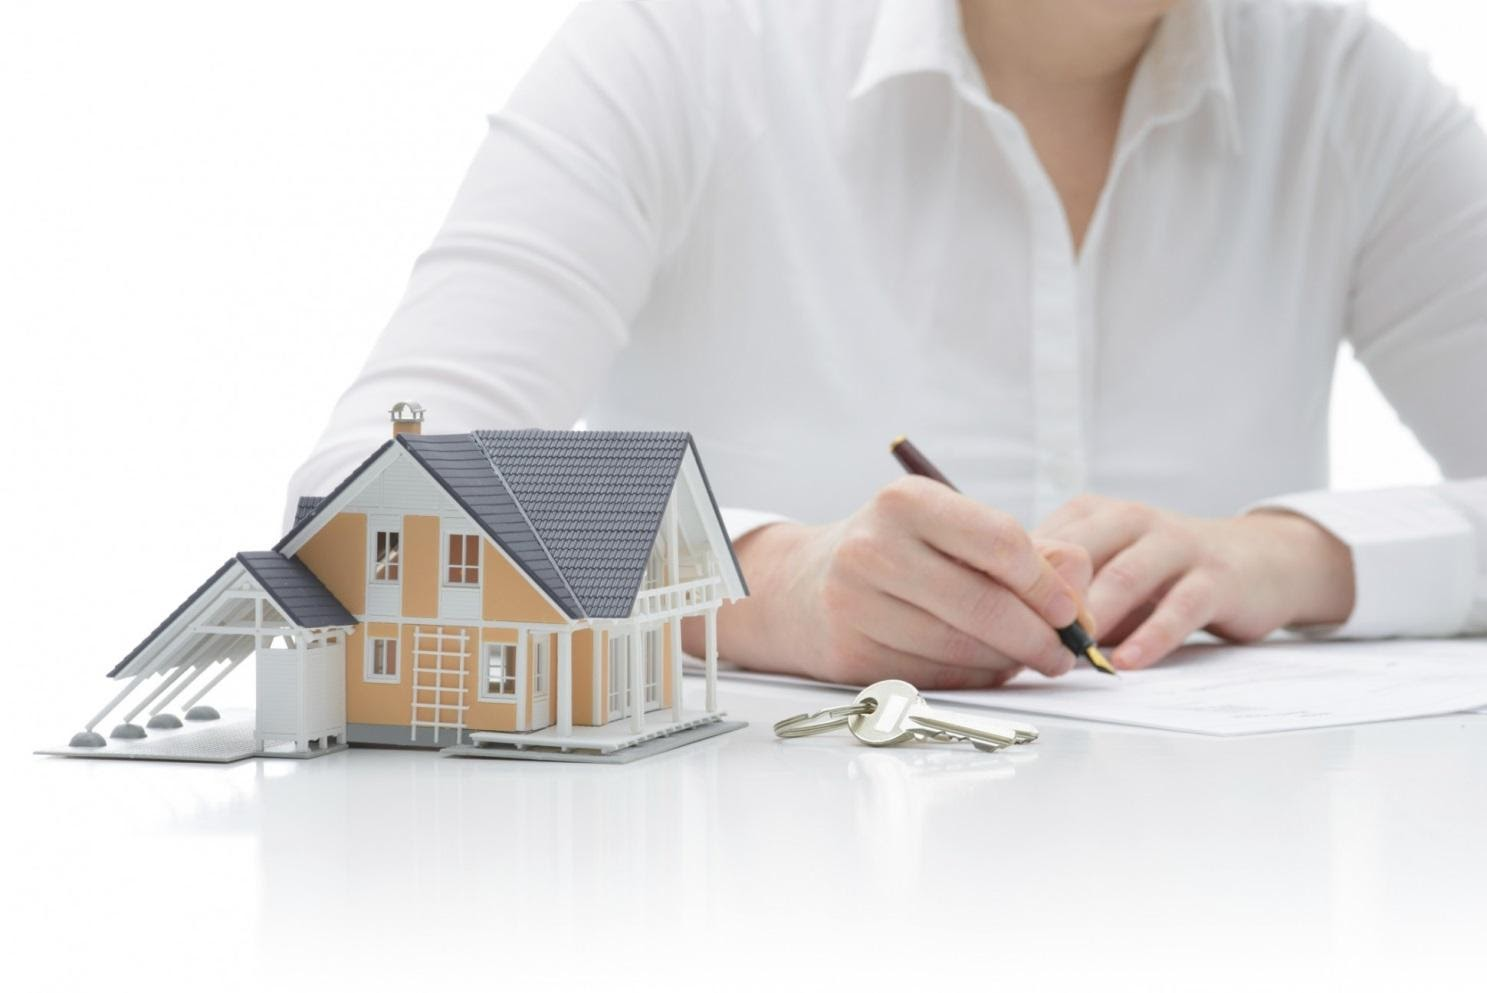 Selling your house to a home buyers company